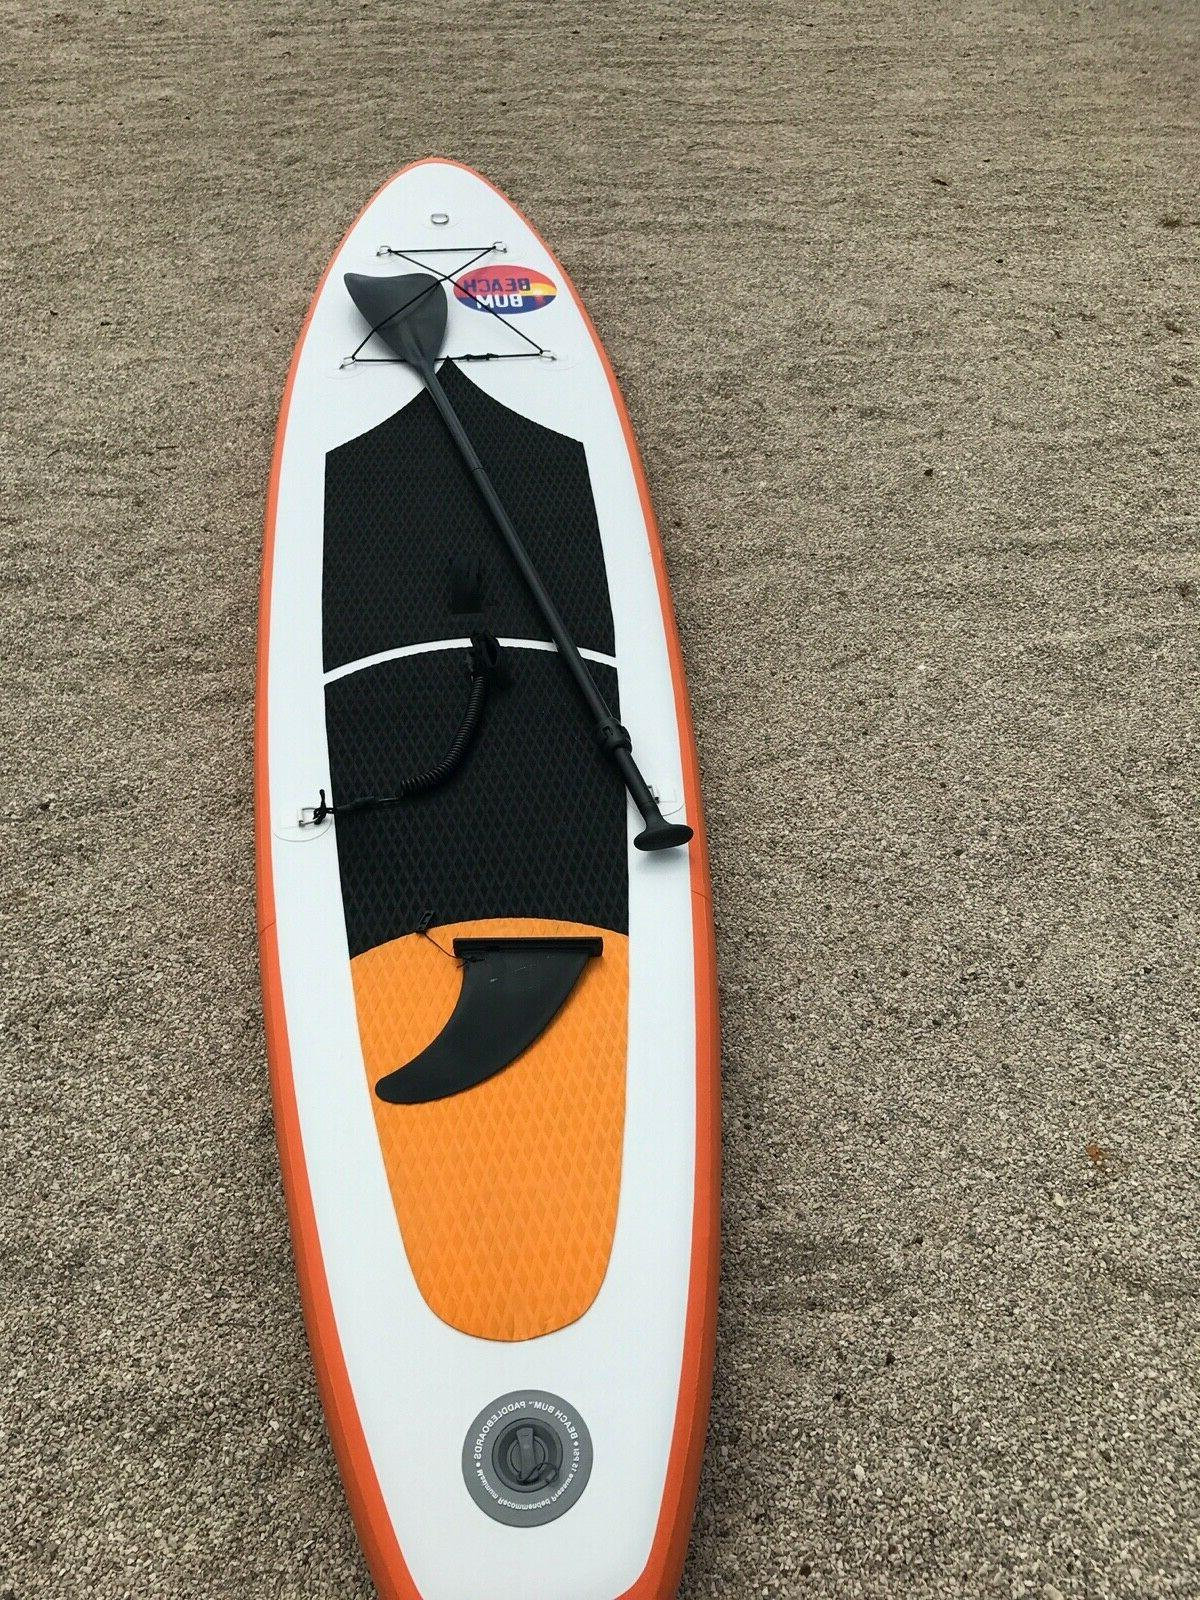 Beach SPK2 10' Up Board w/ Paddle and